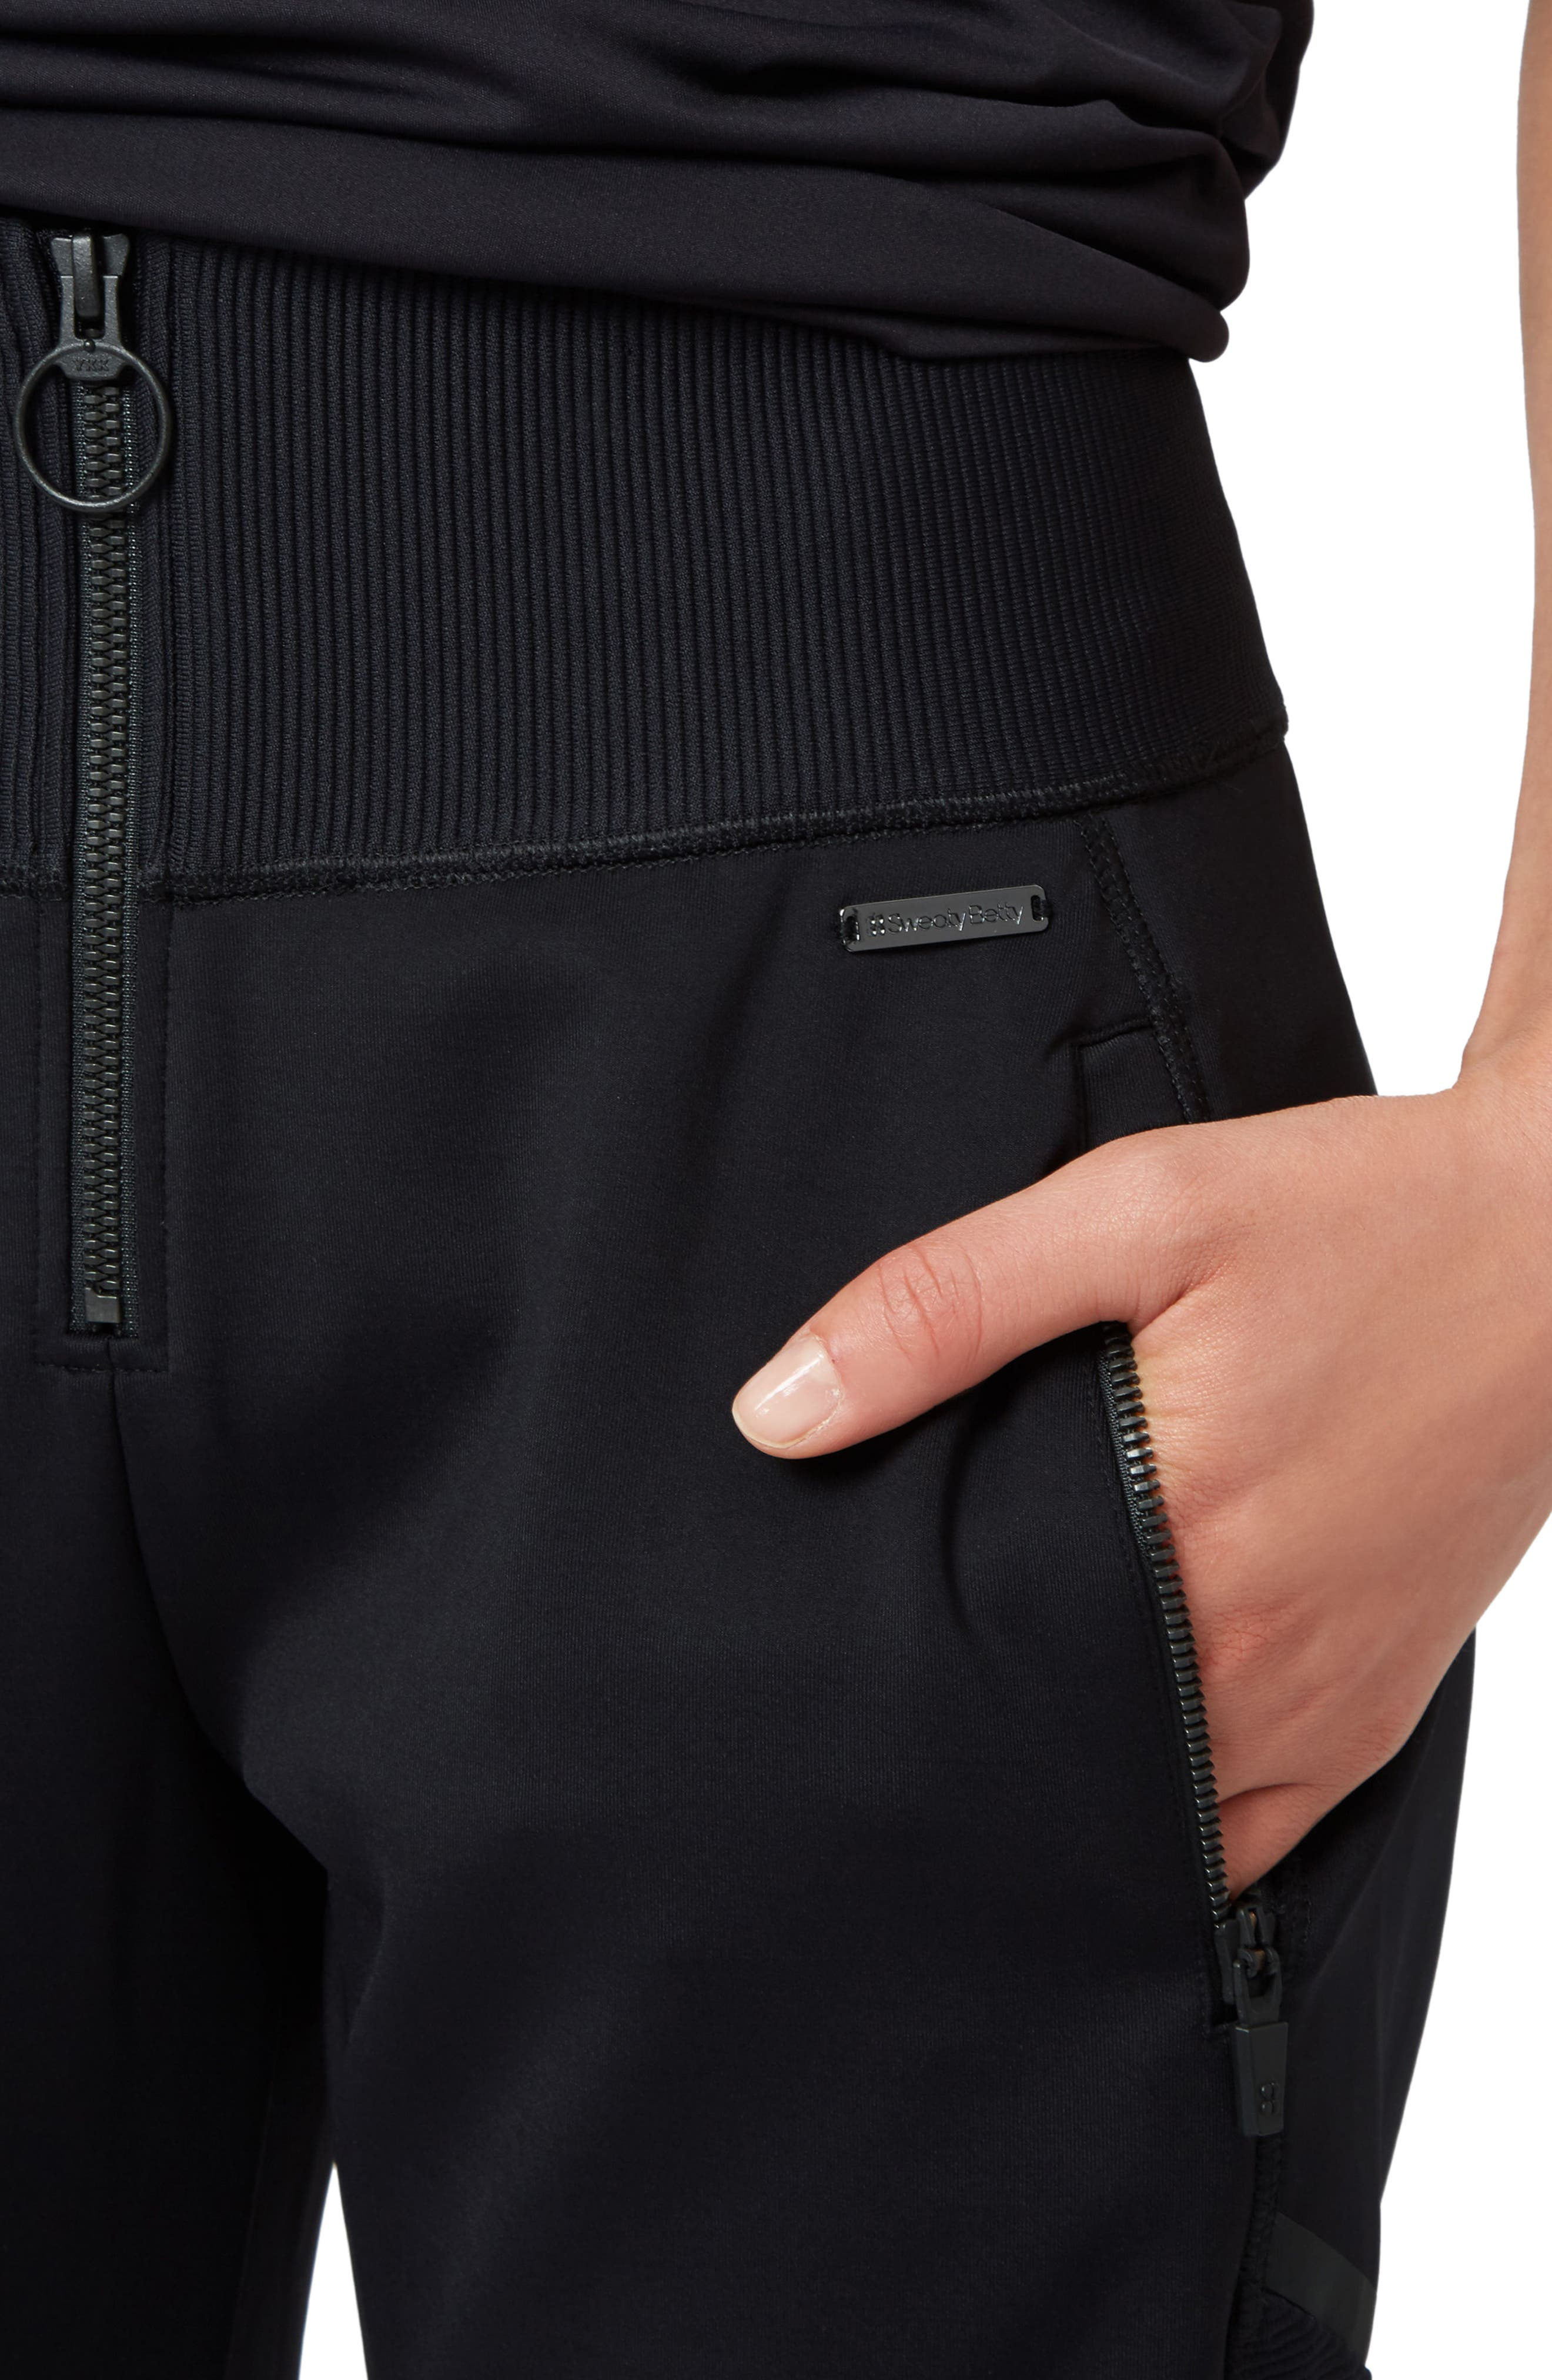 Flex Sweatpants,                             Alternate thumbnail 4, color,                             Black